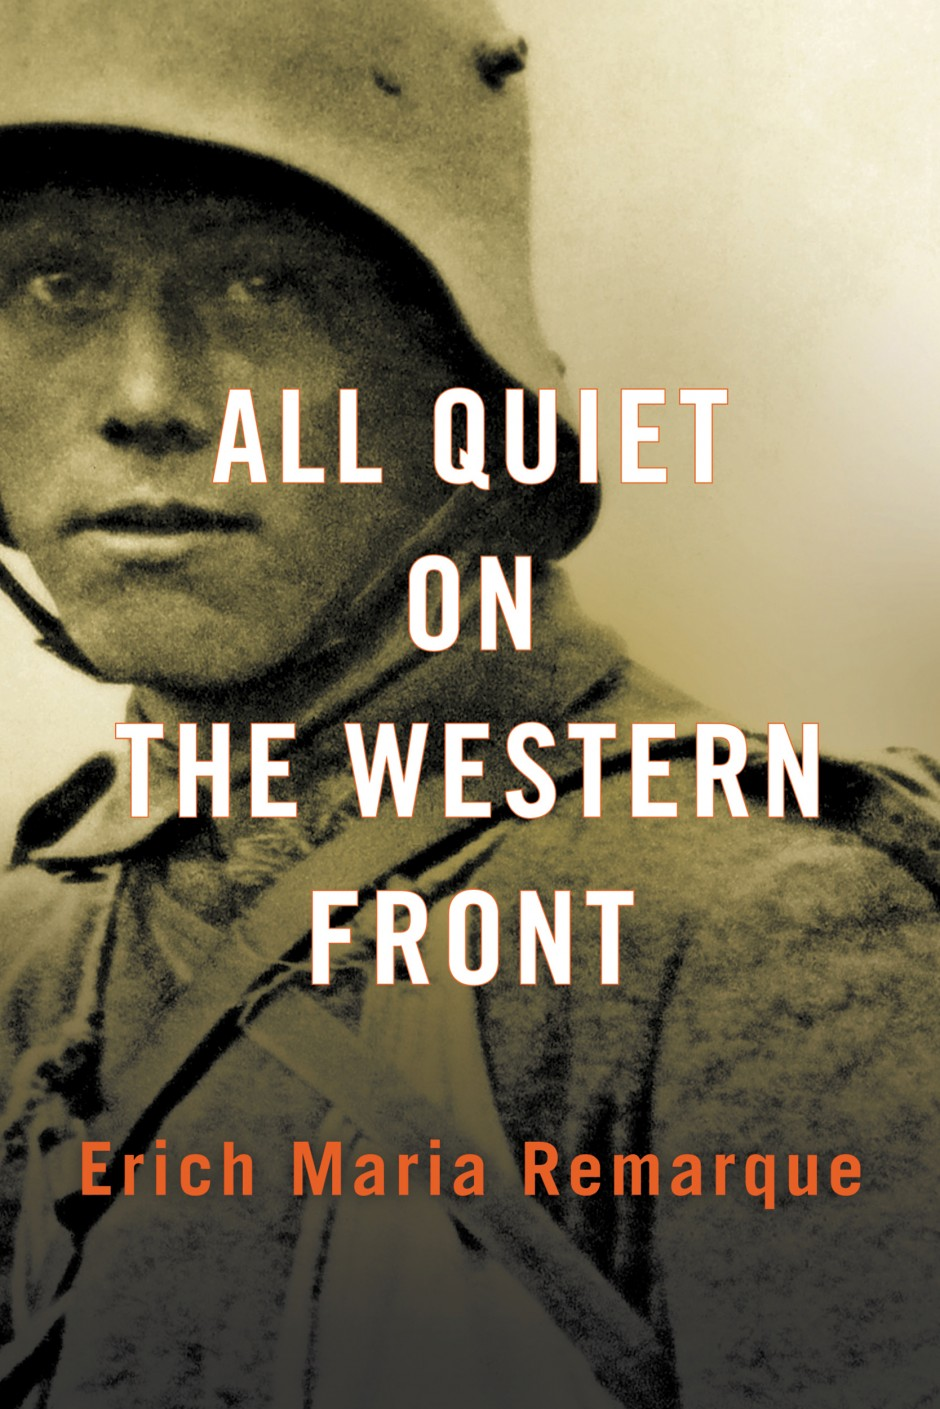 symbolism in the novel all quiet on the western front by erich maria remarque